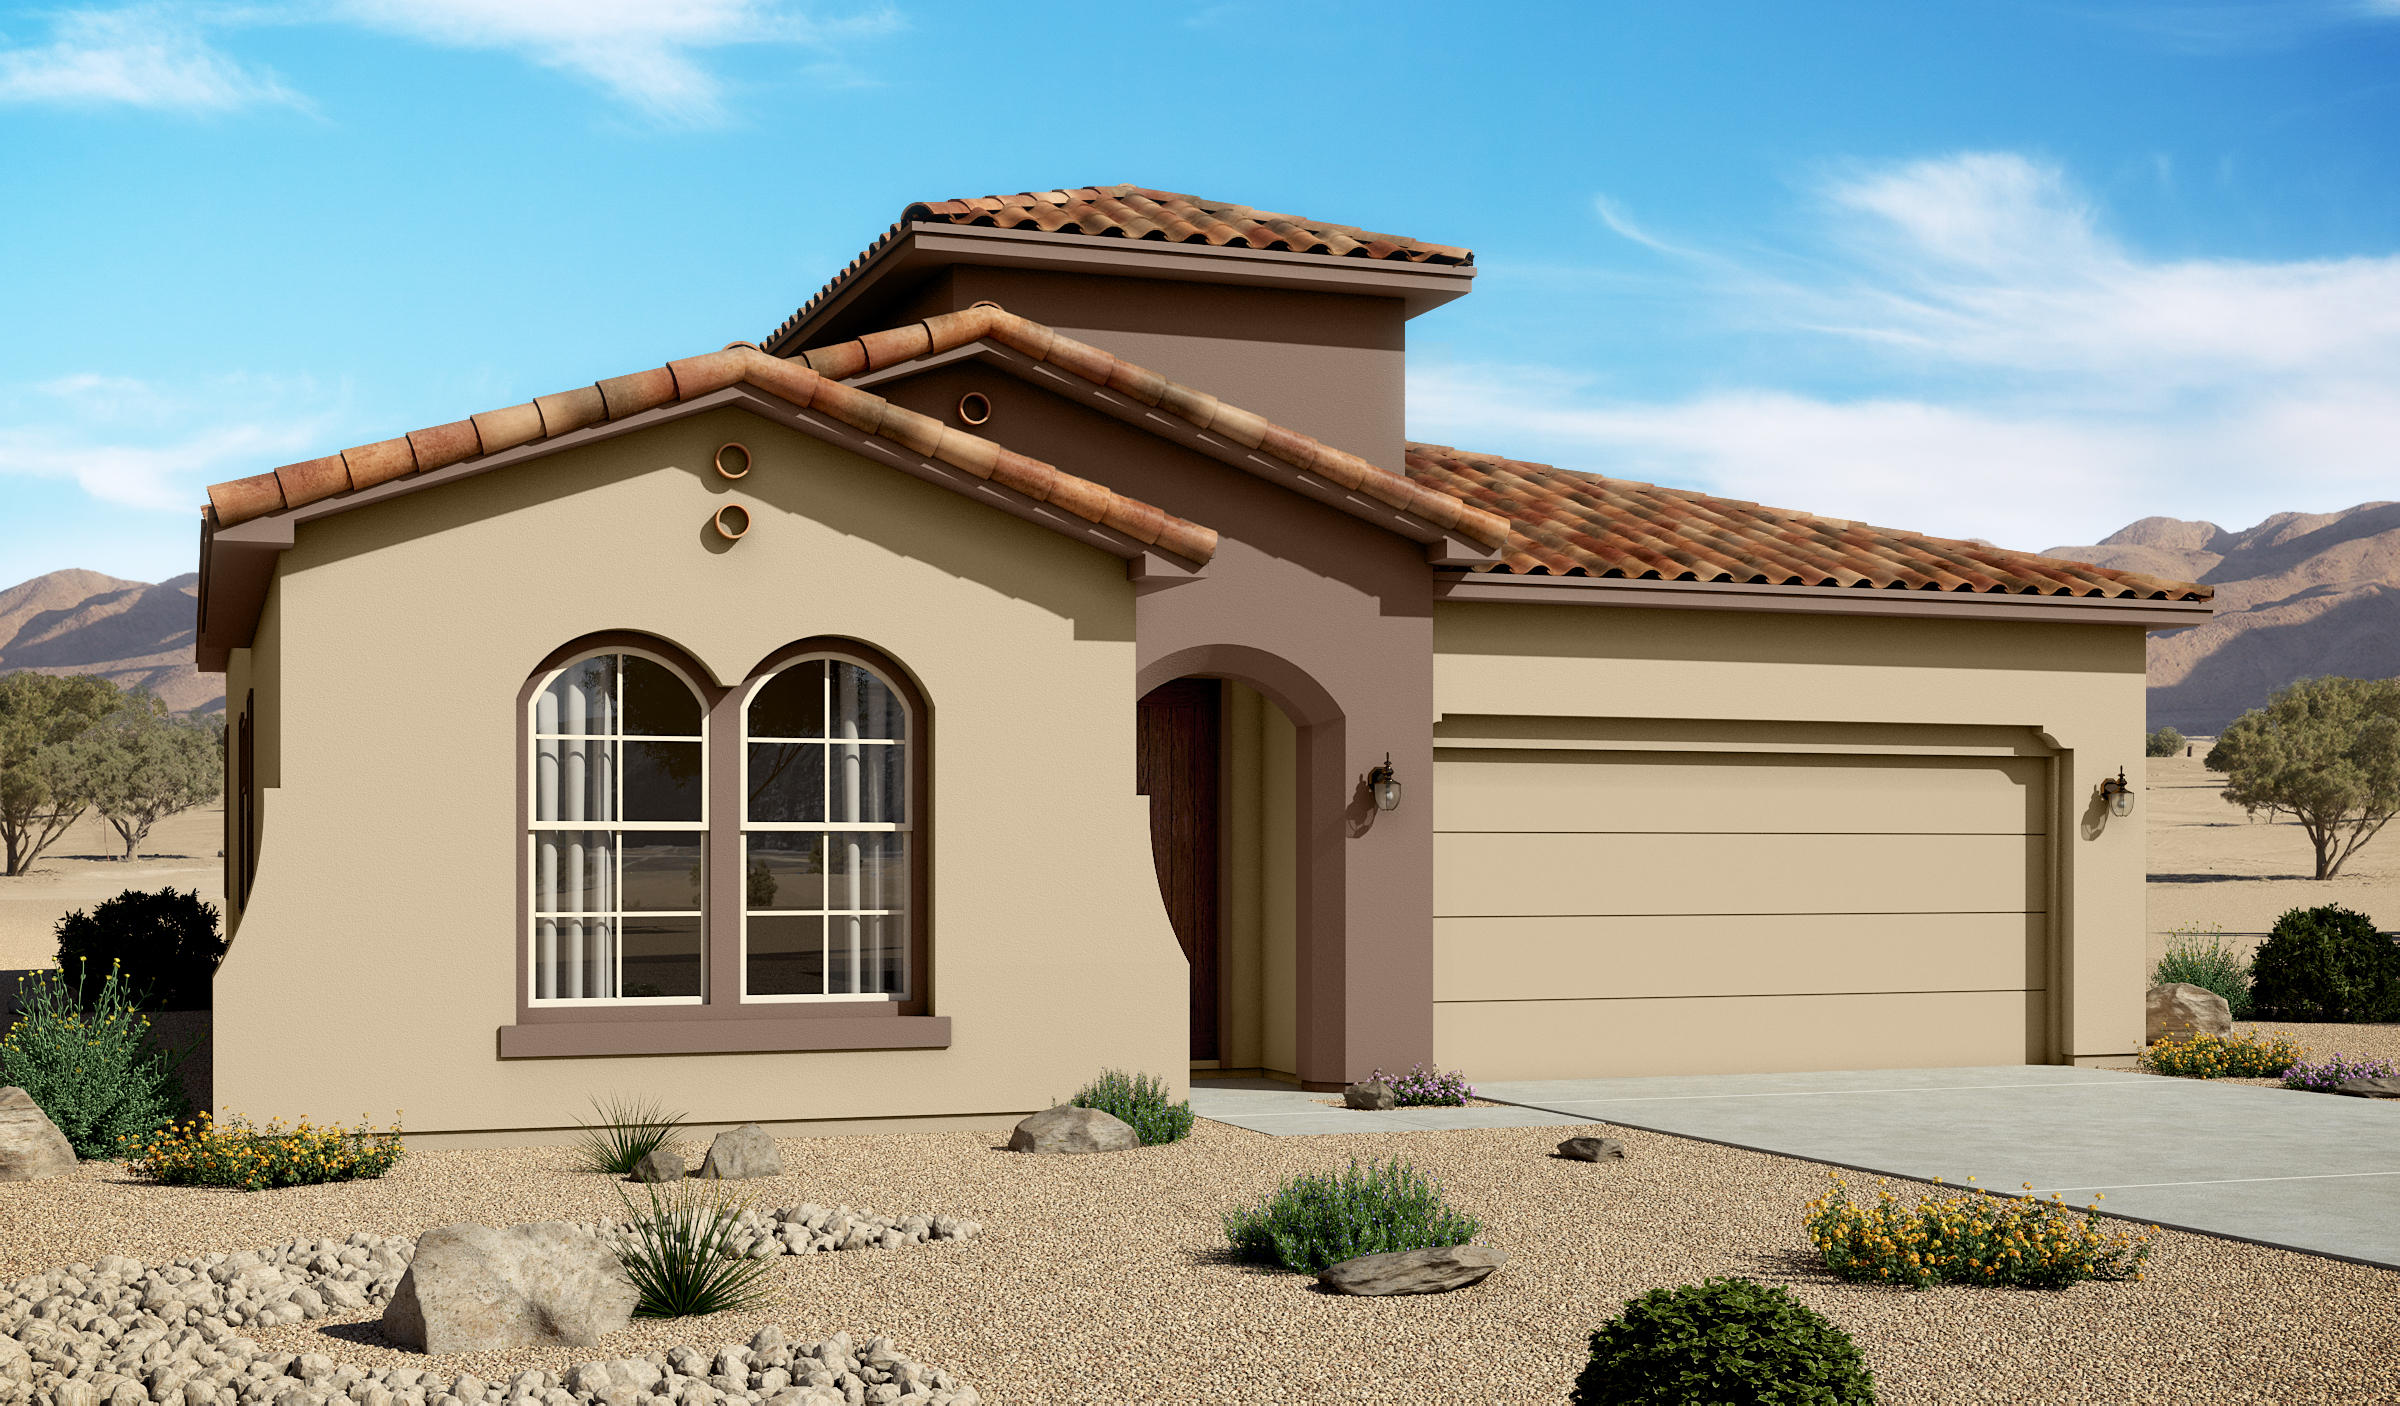 Estimated Completion Date: 12/24/2020 Lomas Encantadas Unit 2C Phase 3 Block 1 lot 361920 Mediterranean3 br 2.5 baths 2 car garage36'' fireplace with Explorer Barcelona tile; Pendant Lighting over Kitchen Island; Master tiled shower with rain shower head; 8' doors; Gourmet Kitchen with farm sink; Tiled floors and Bathroom walls; carpet in bedrooms and closets